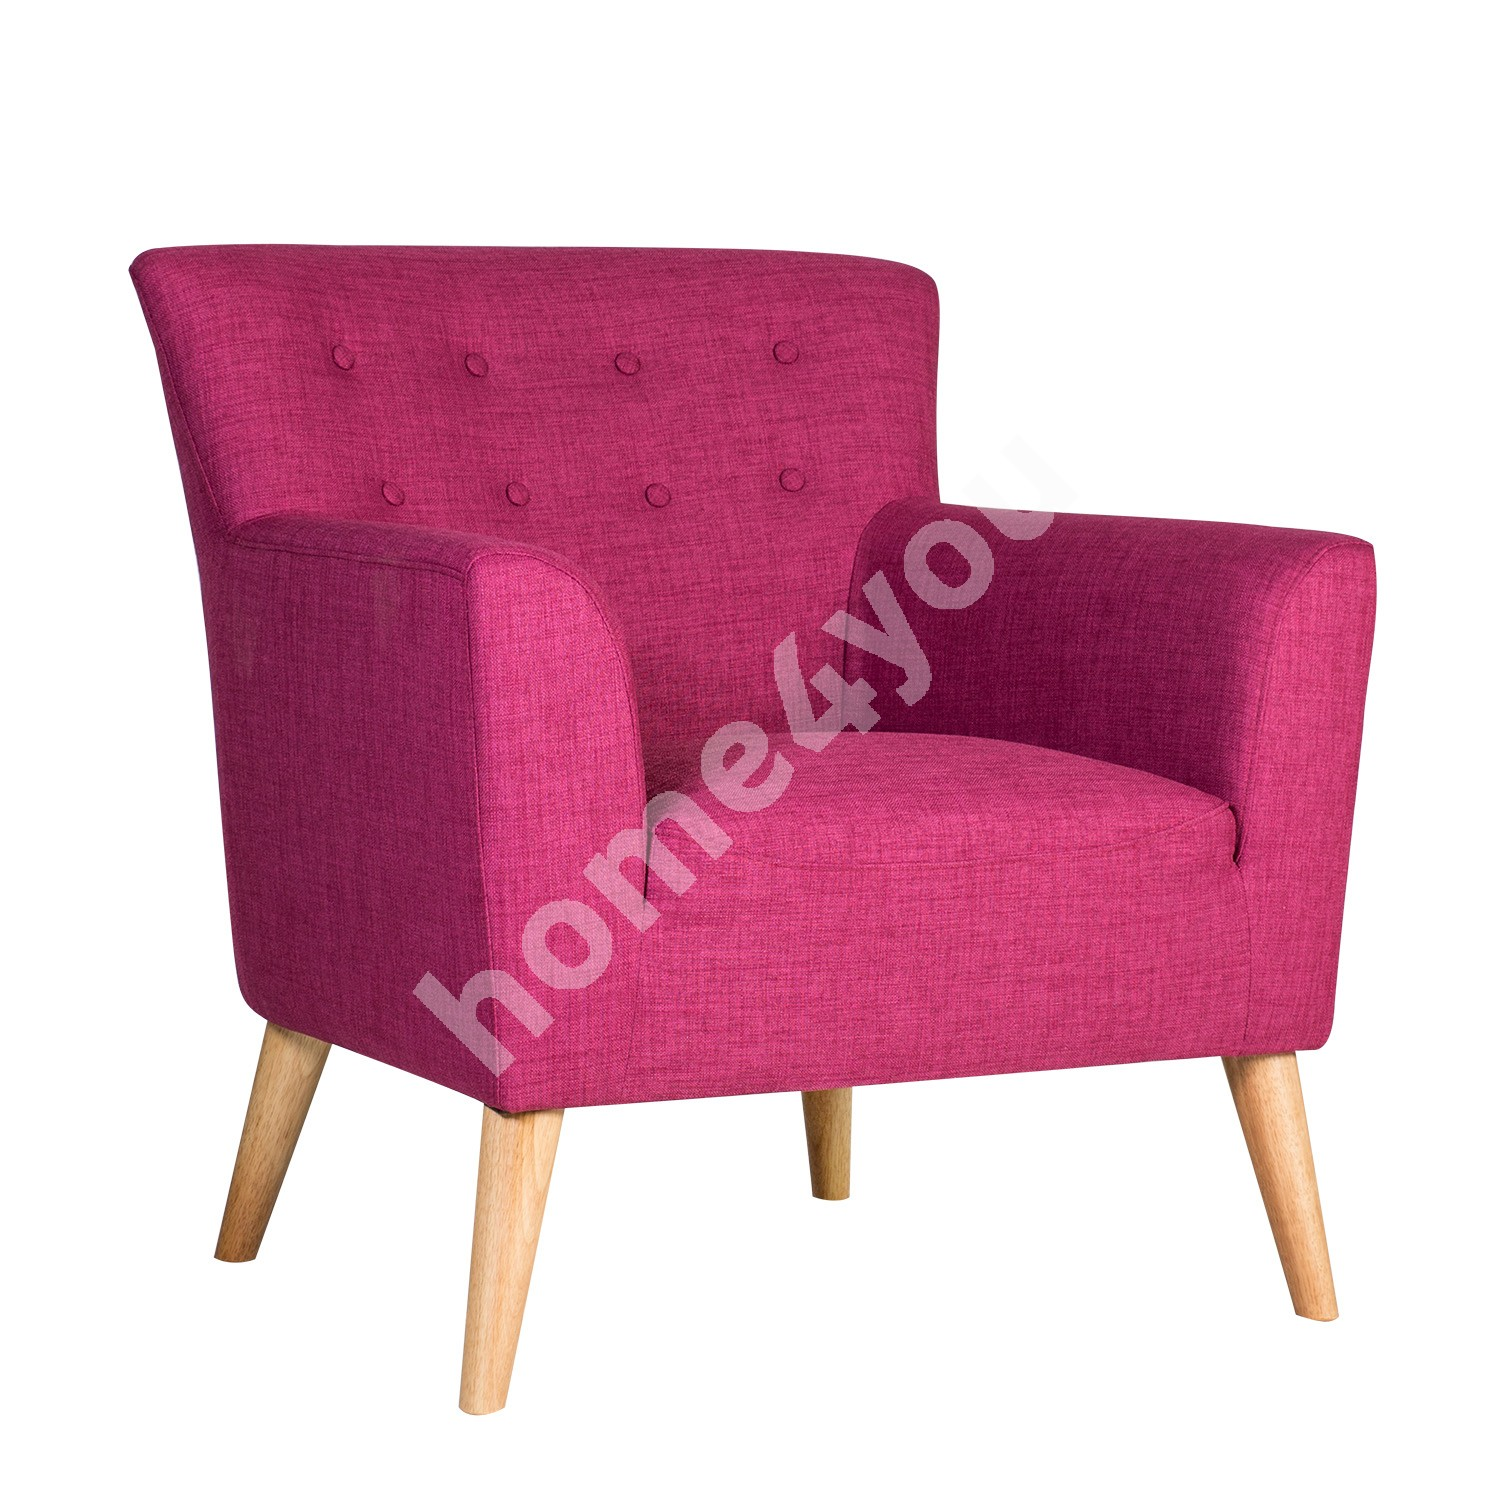 Arm chair MOVIE 83x76xH83cm, cover material: fabric, color: fuchsia